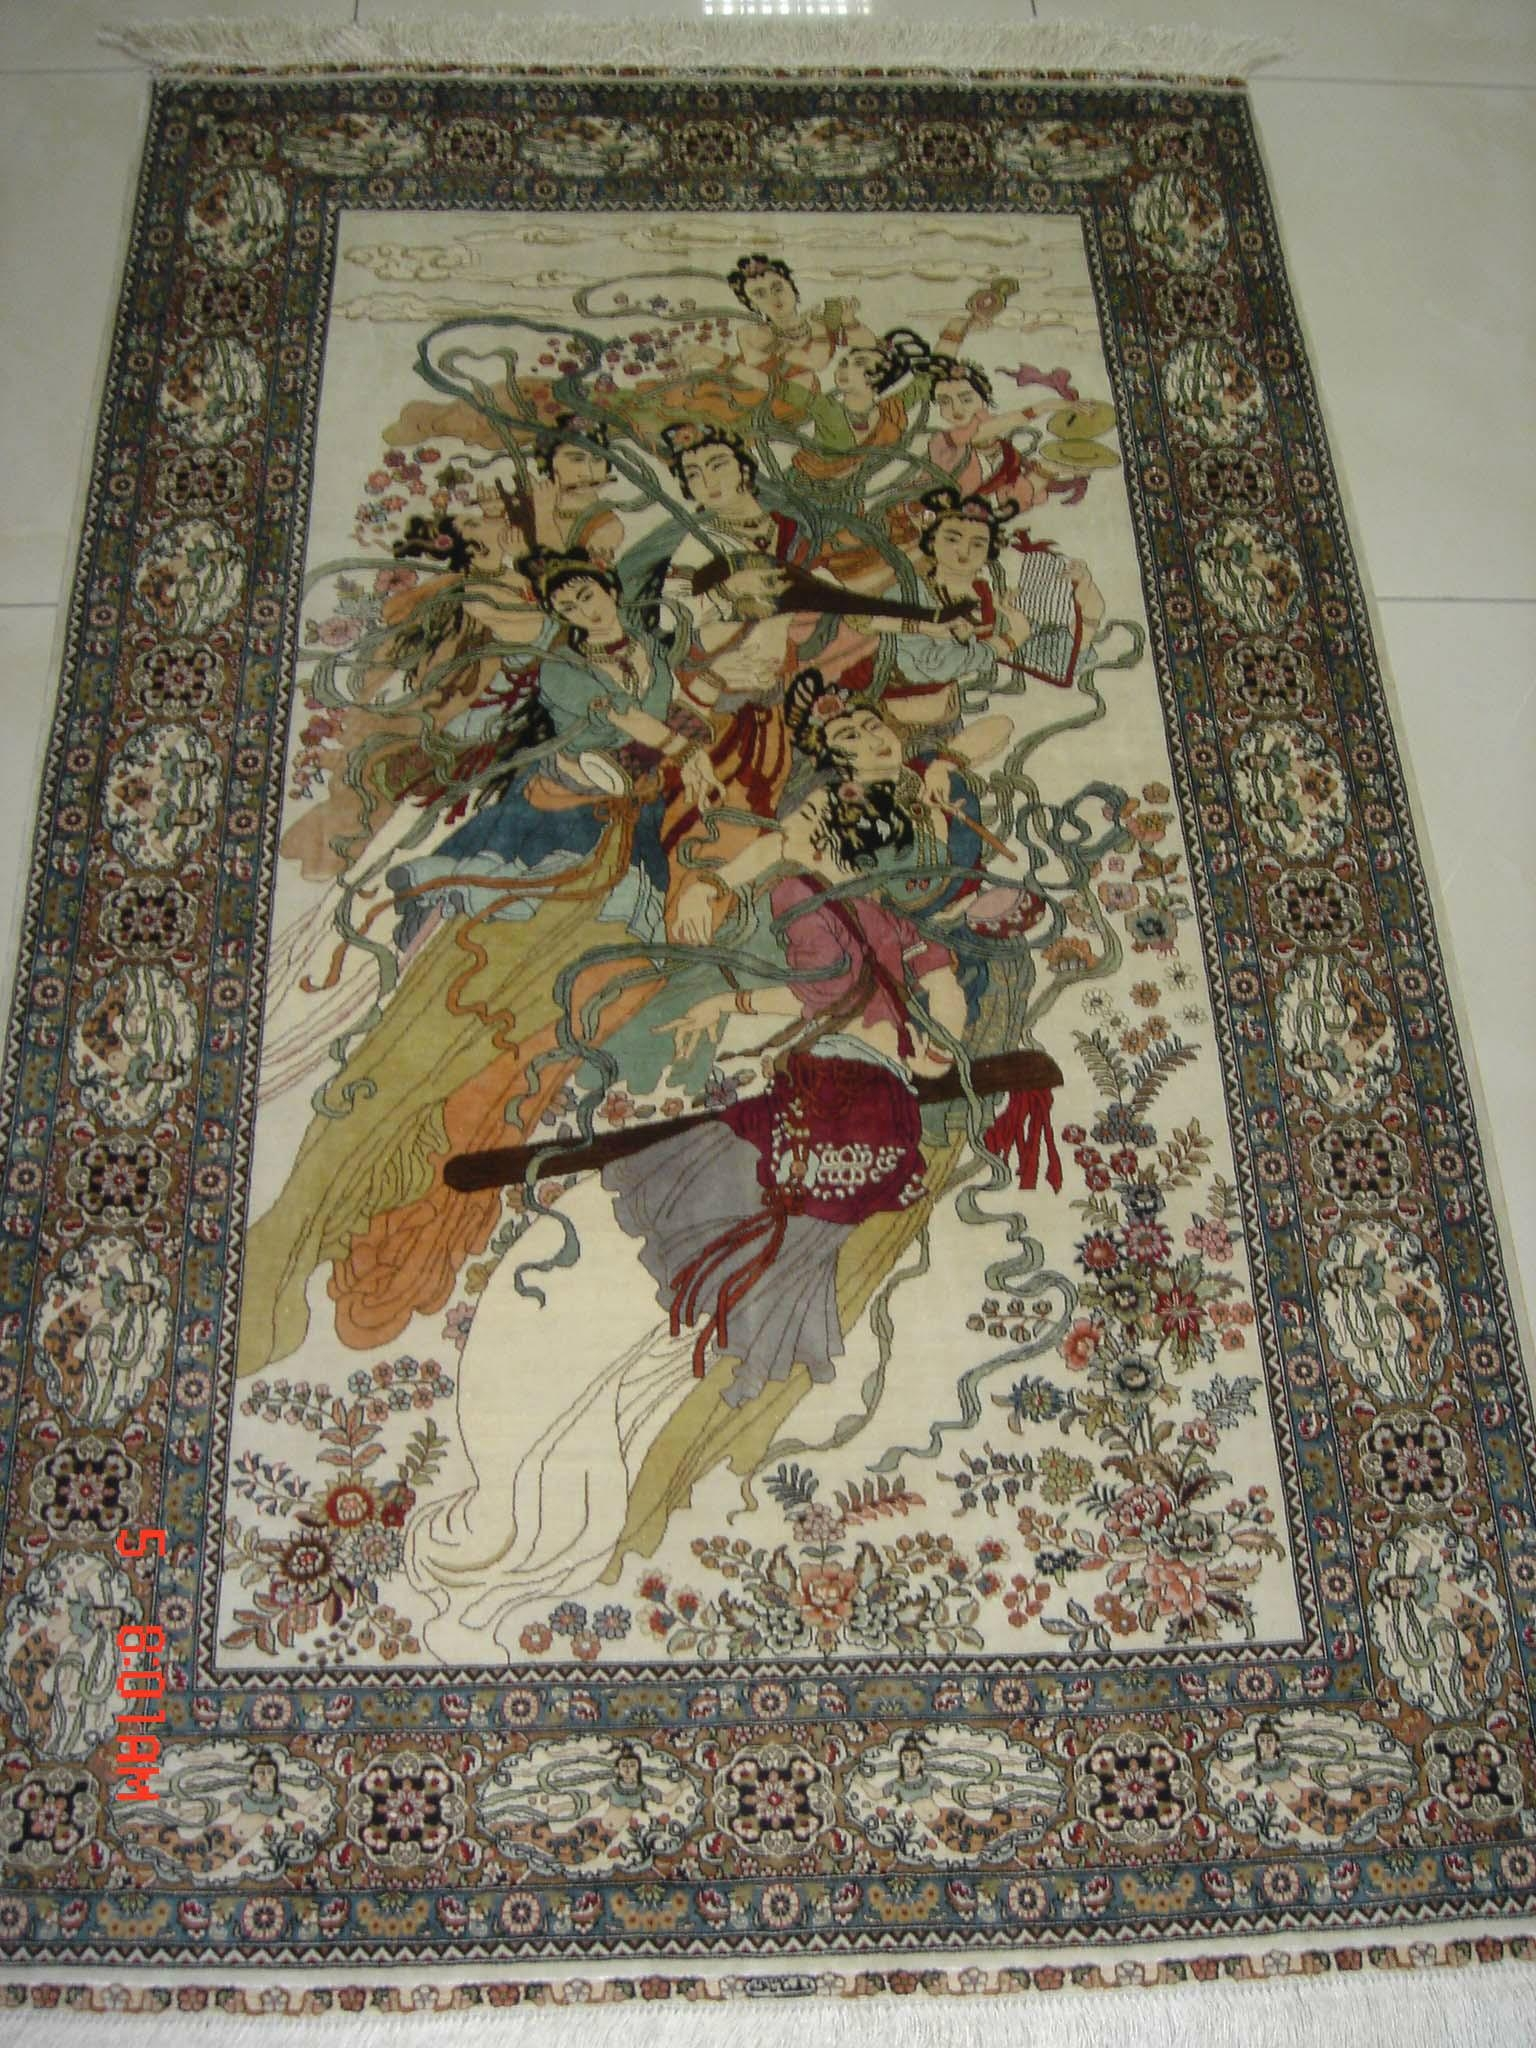 High quality art tapestry collection (Fairy vies for beauty) is with the world 2